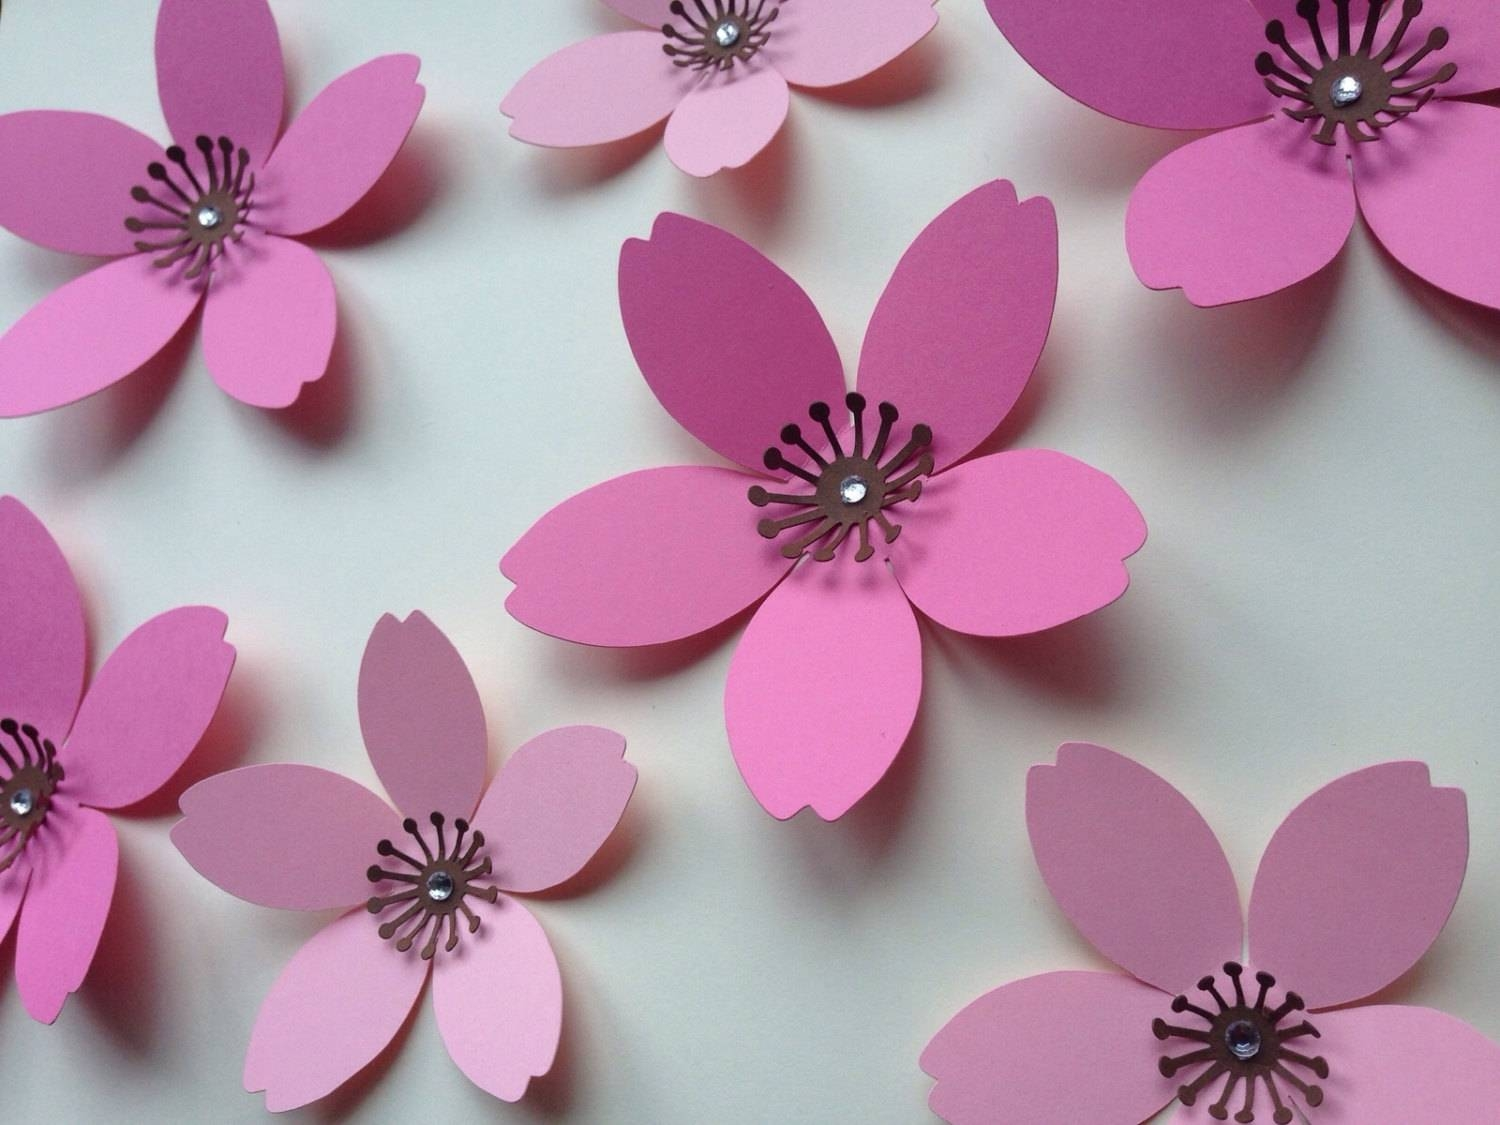 Paper Wall 3d Flower 3d Wall Art Paper Flower Wall Paper Throughout Best And Newest Flowers 3d Wall Art (View 10 of 20)